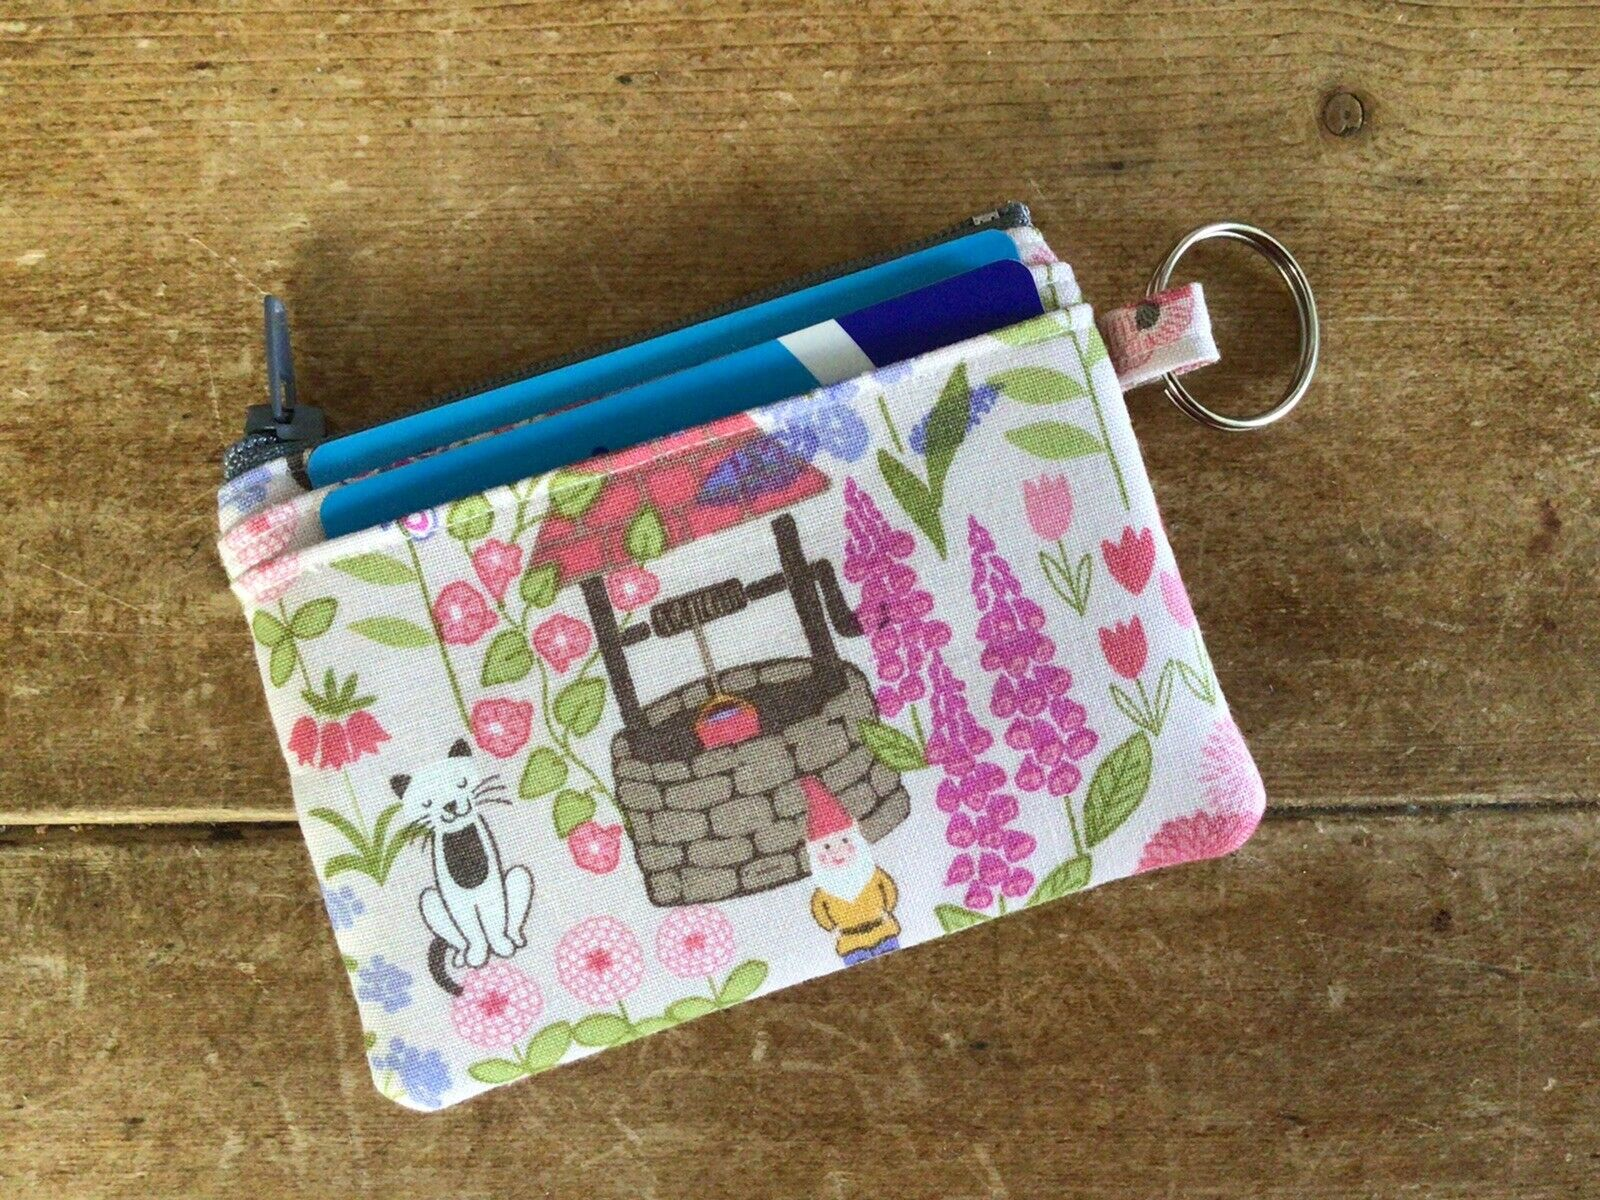 Handmade Credit Card Case Wallet Coin Purse Key Ring Gnome Floral Fabric